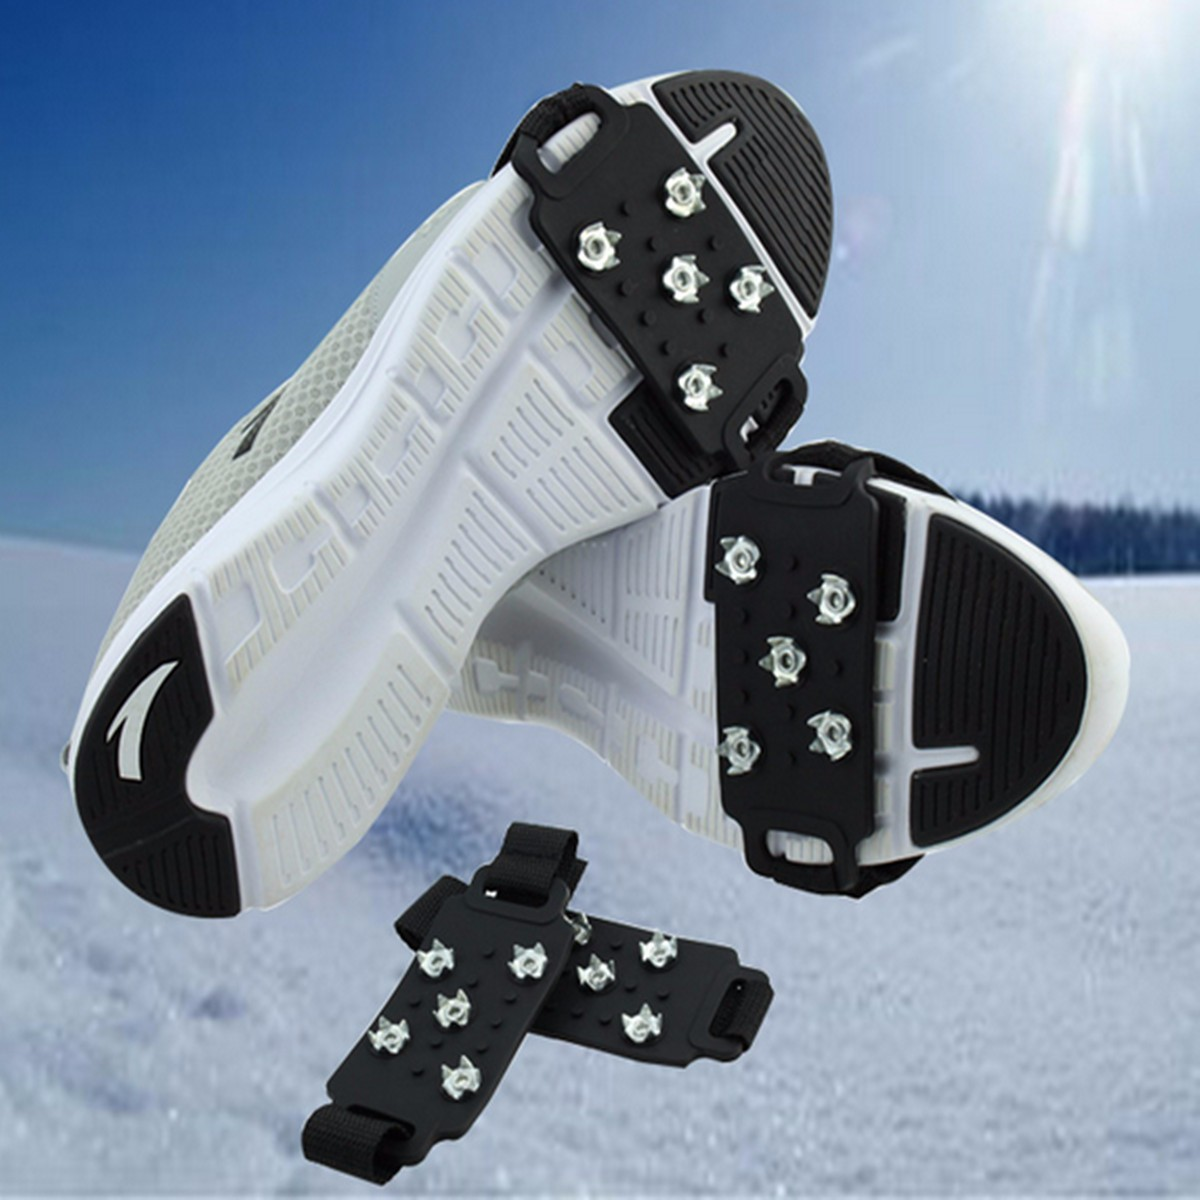 1Pair Silica Gel Ice Grippers, Snow Ice Climbing Anti Slip Spikes Grips Crampon Cleat 5-Stud Shoes Cover Hiking Trekking Slipper bsaid1pair silic ice grippers snow ice climbing anti slip spikes grips crampon cleat 5 stud shoes cover hiking trekking slipper